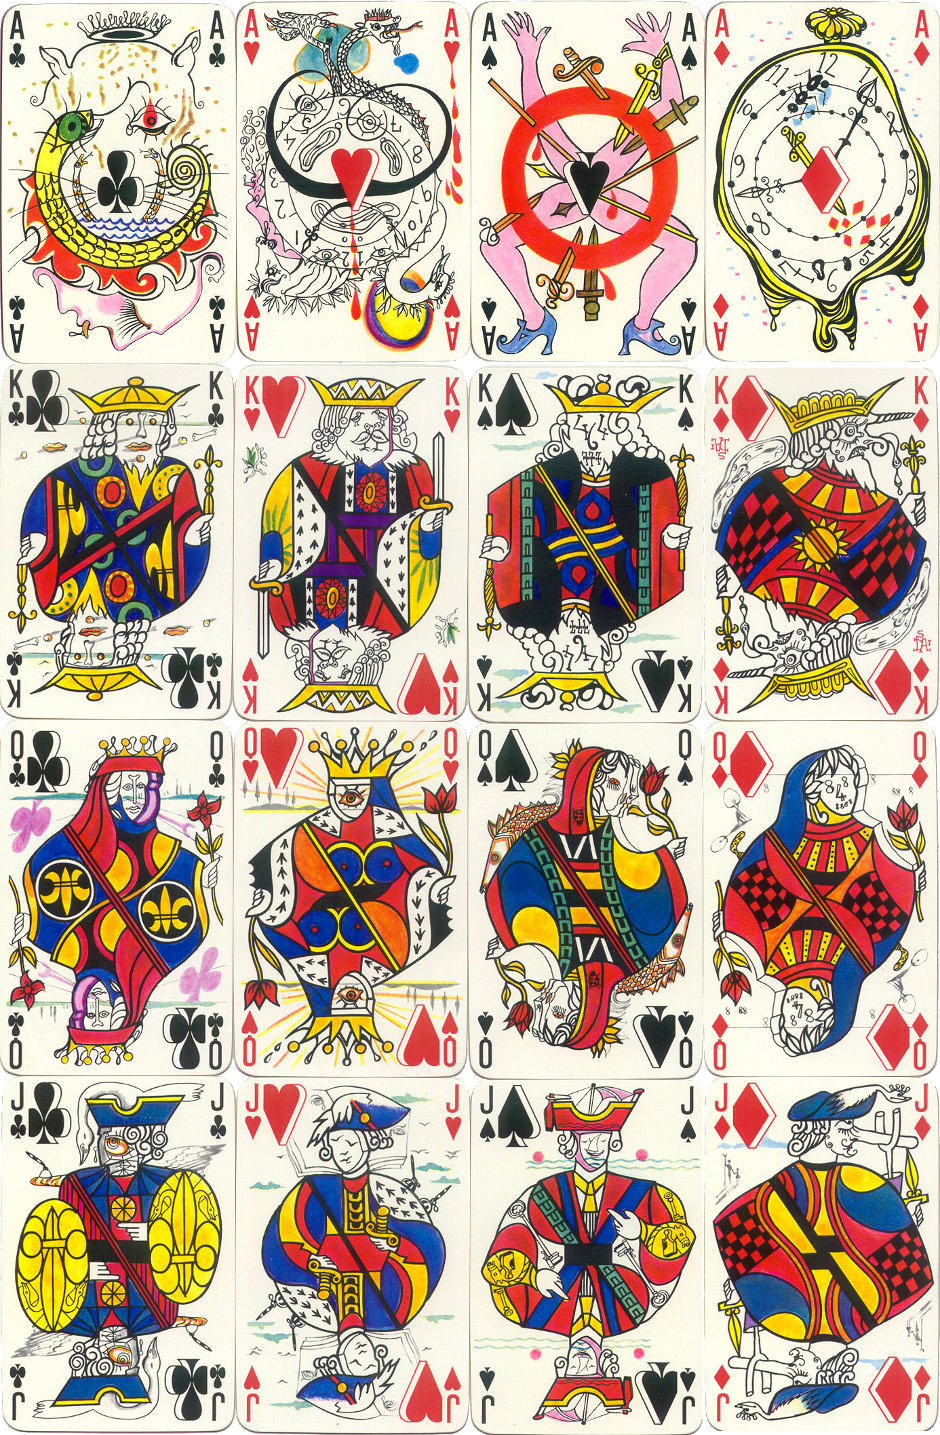 Playing cards designed by Salvador Dalí, 1967